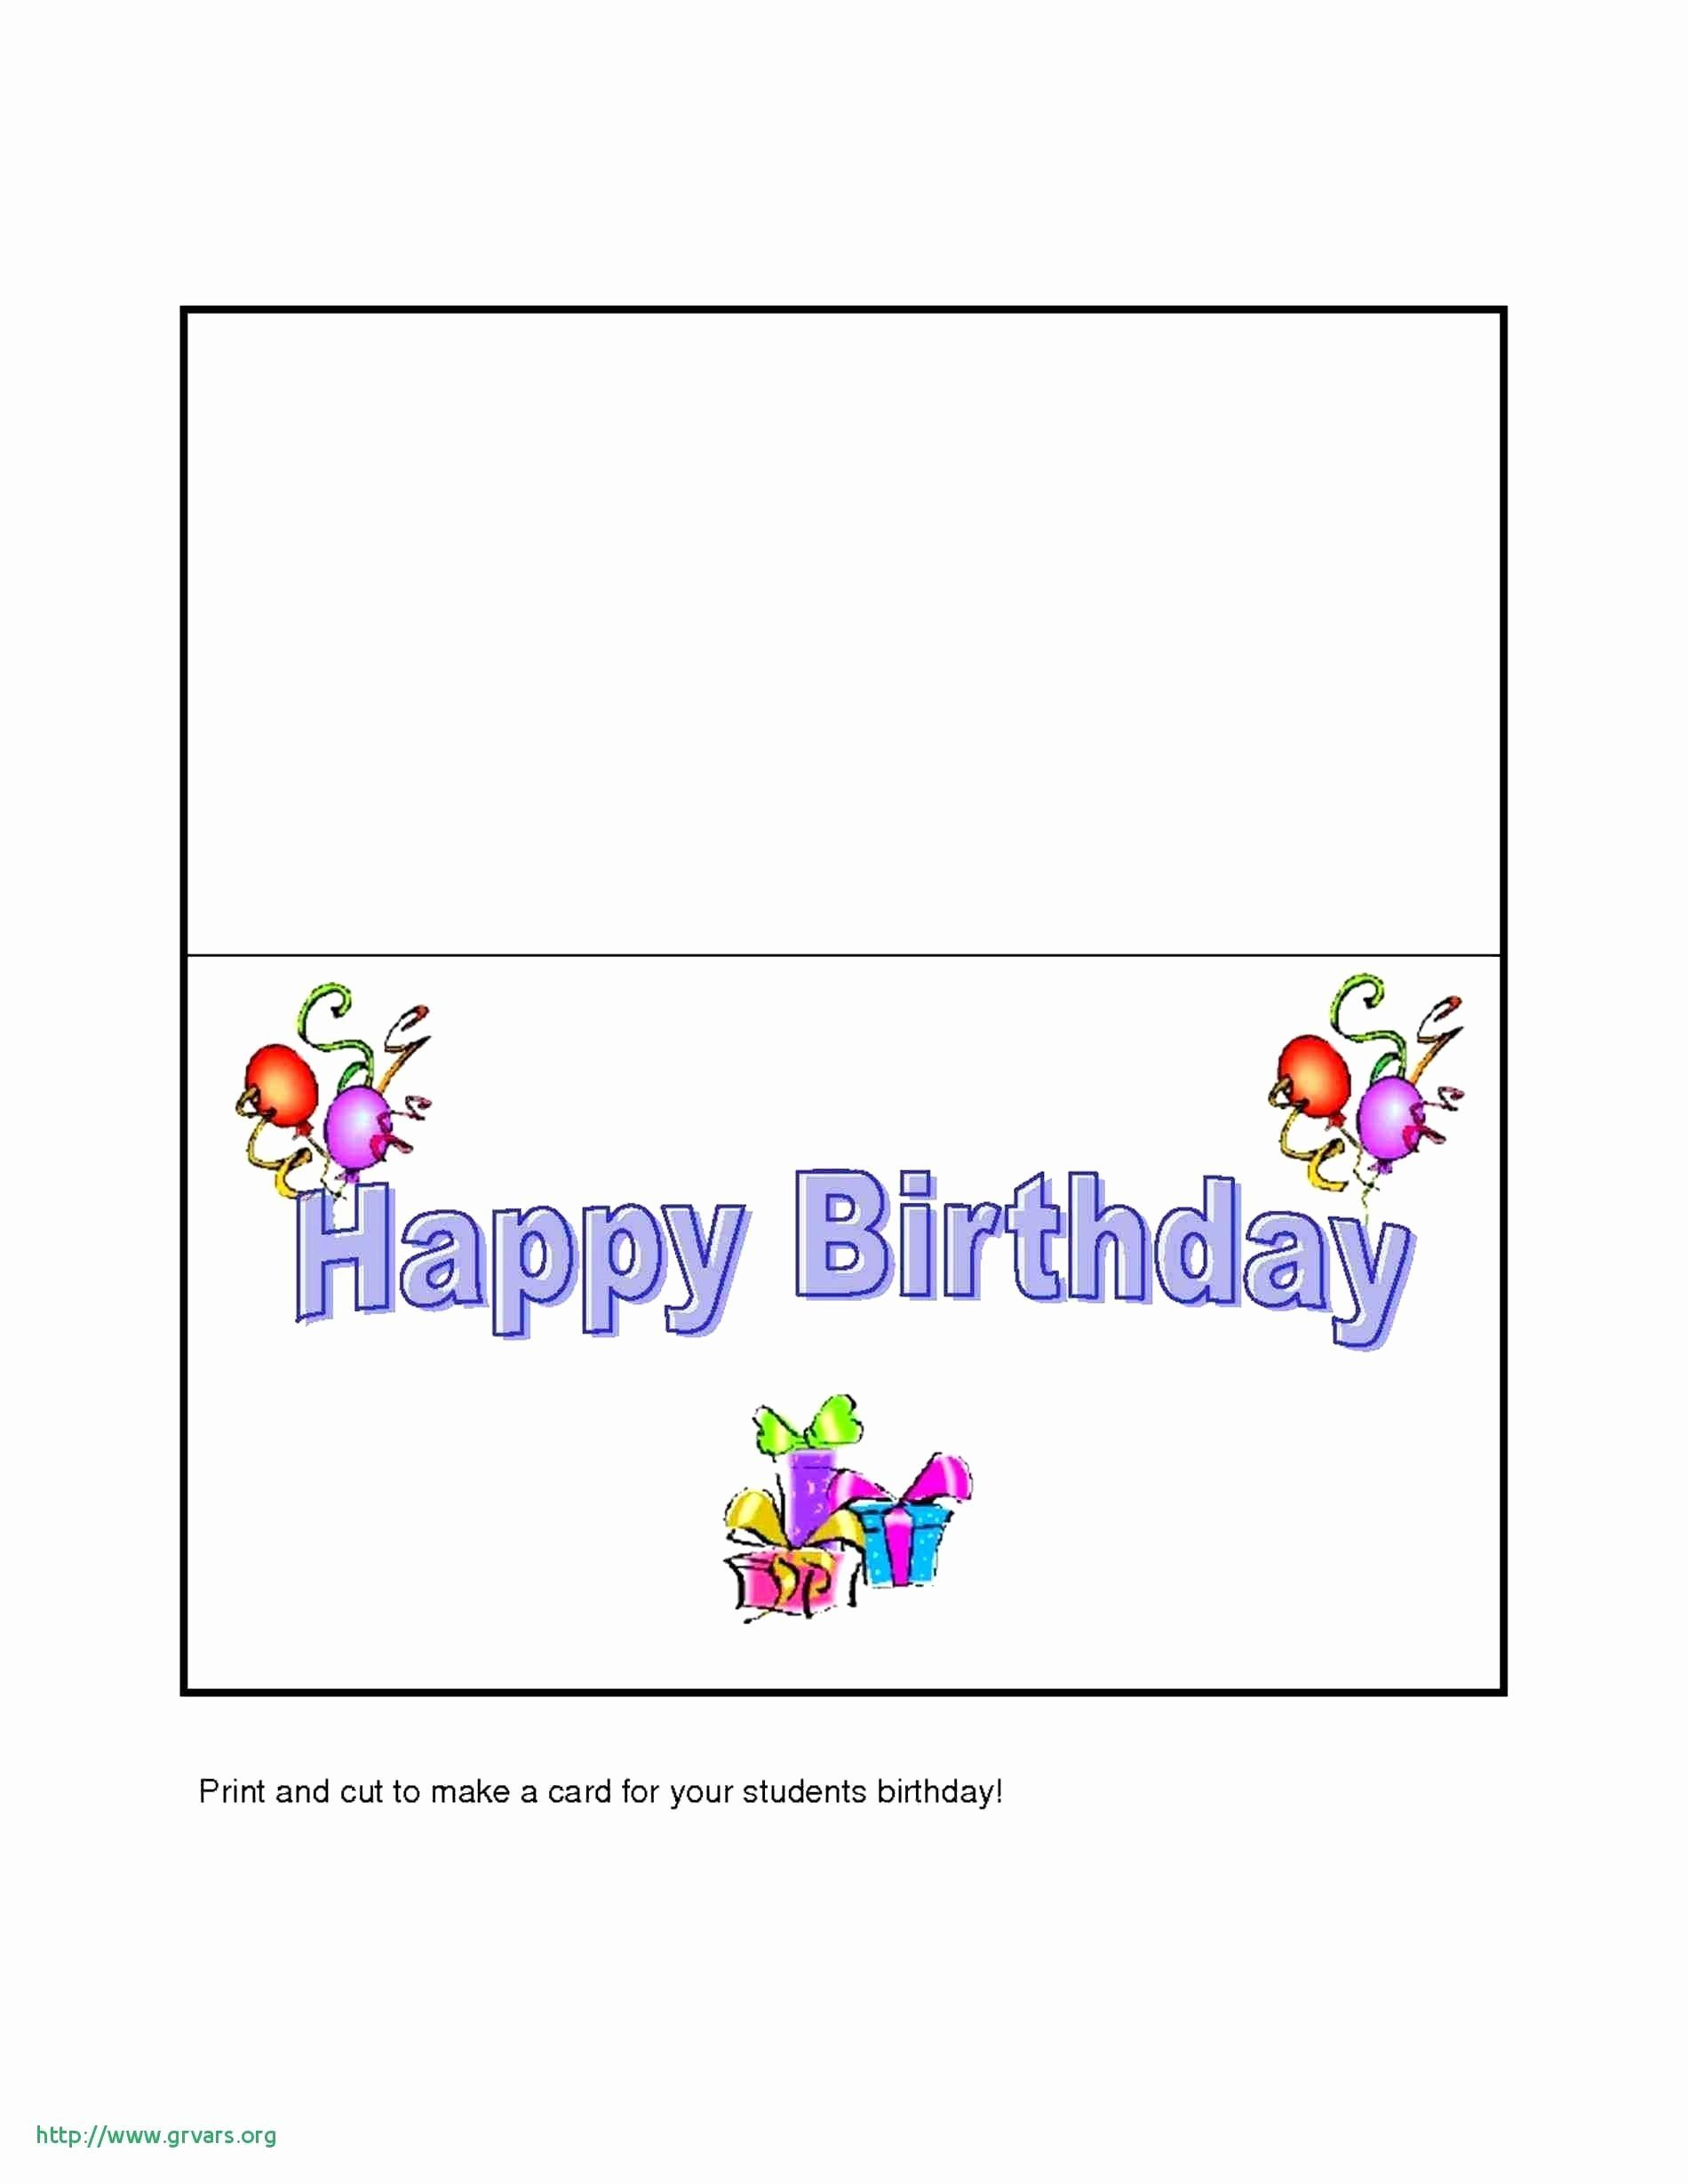 Funny Friendship Ecards Lovely 96 Best Free Animated Birthday Ecards Free Birthday Cards B Birthday Cards For Niece Birthday Cards For Mom Birthday Card Online